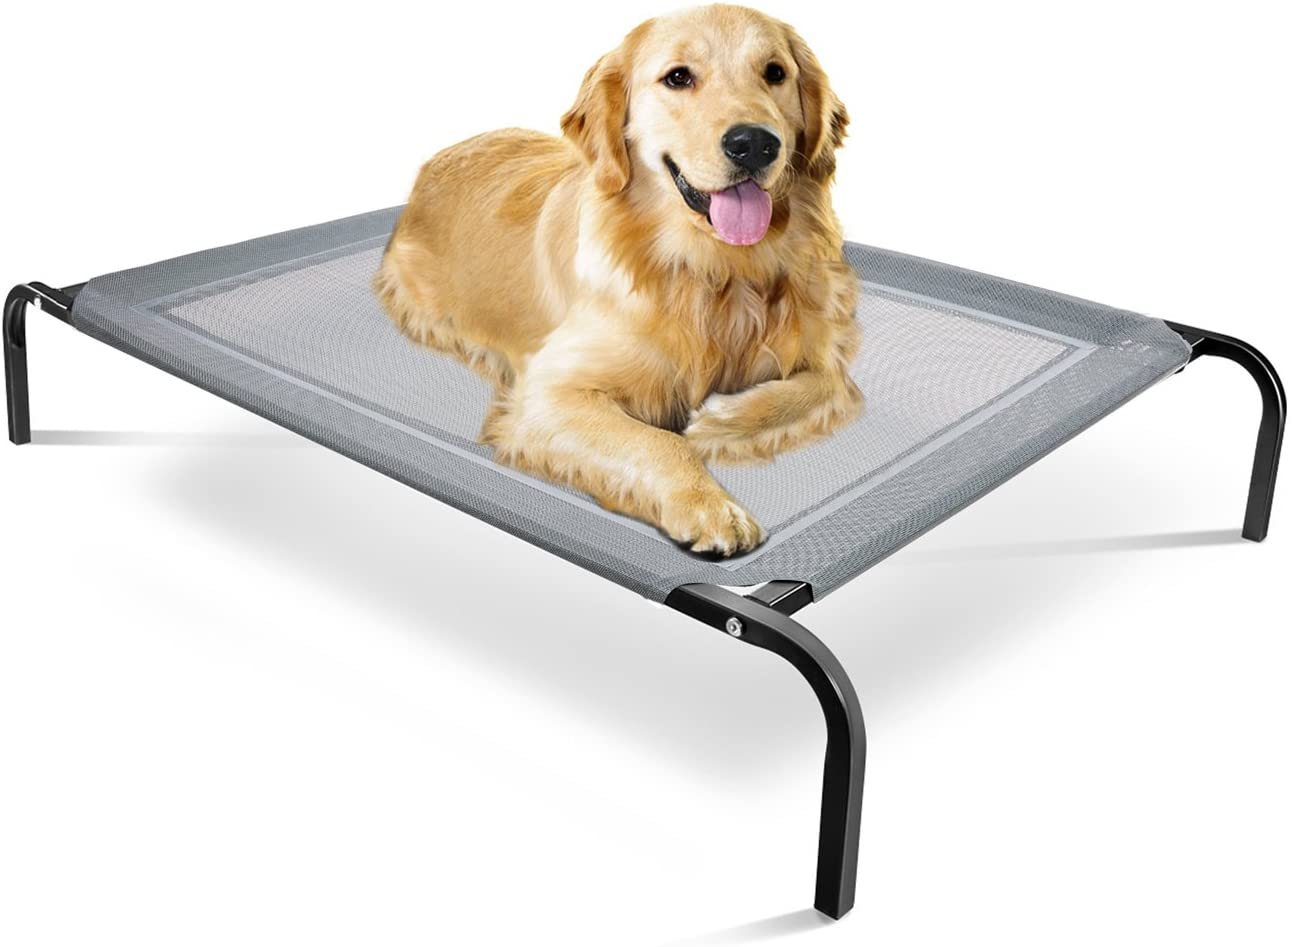 Elevated Dog Bed – Raised Pet Cot in or Out-Door Cots for Dogs Beds – Lifted Hammock Trampoline Suspended Platform Style for Cooling – Indestructible Chew Proof Mesh Cool Off The Ground Floor